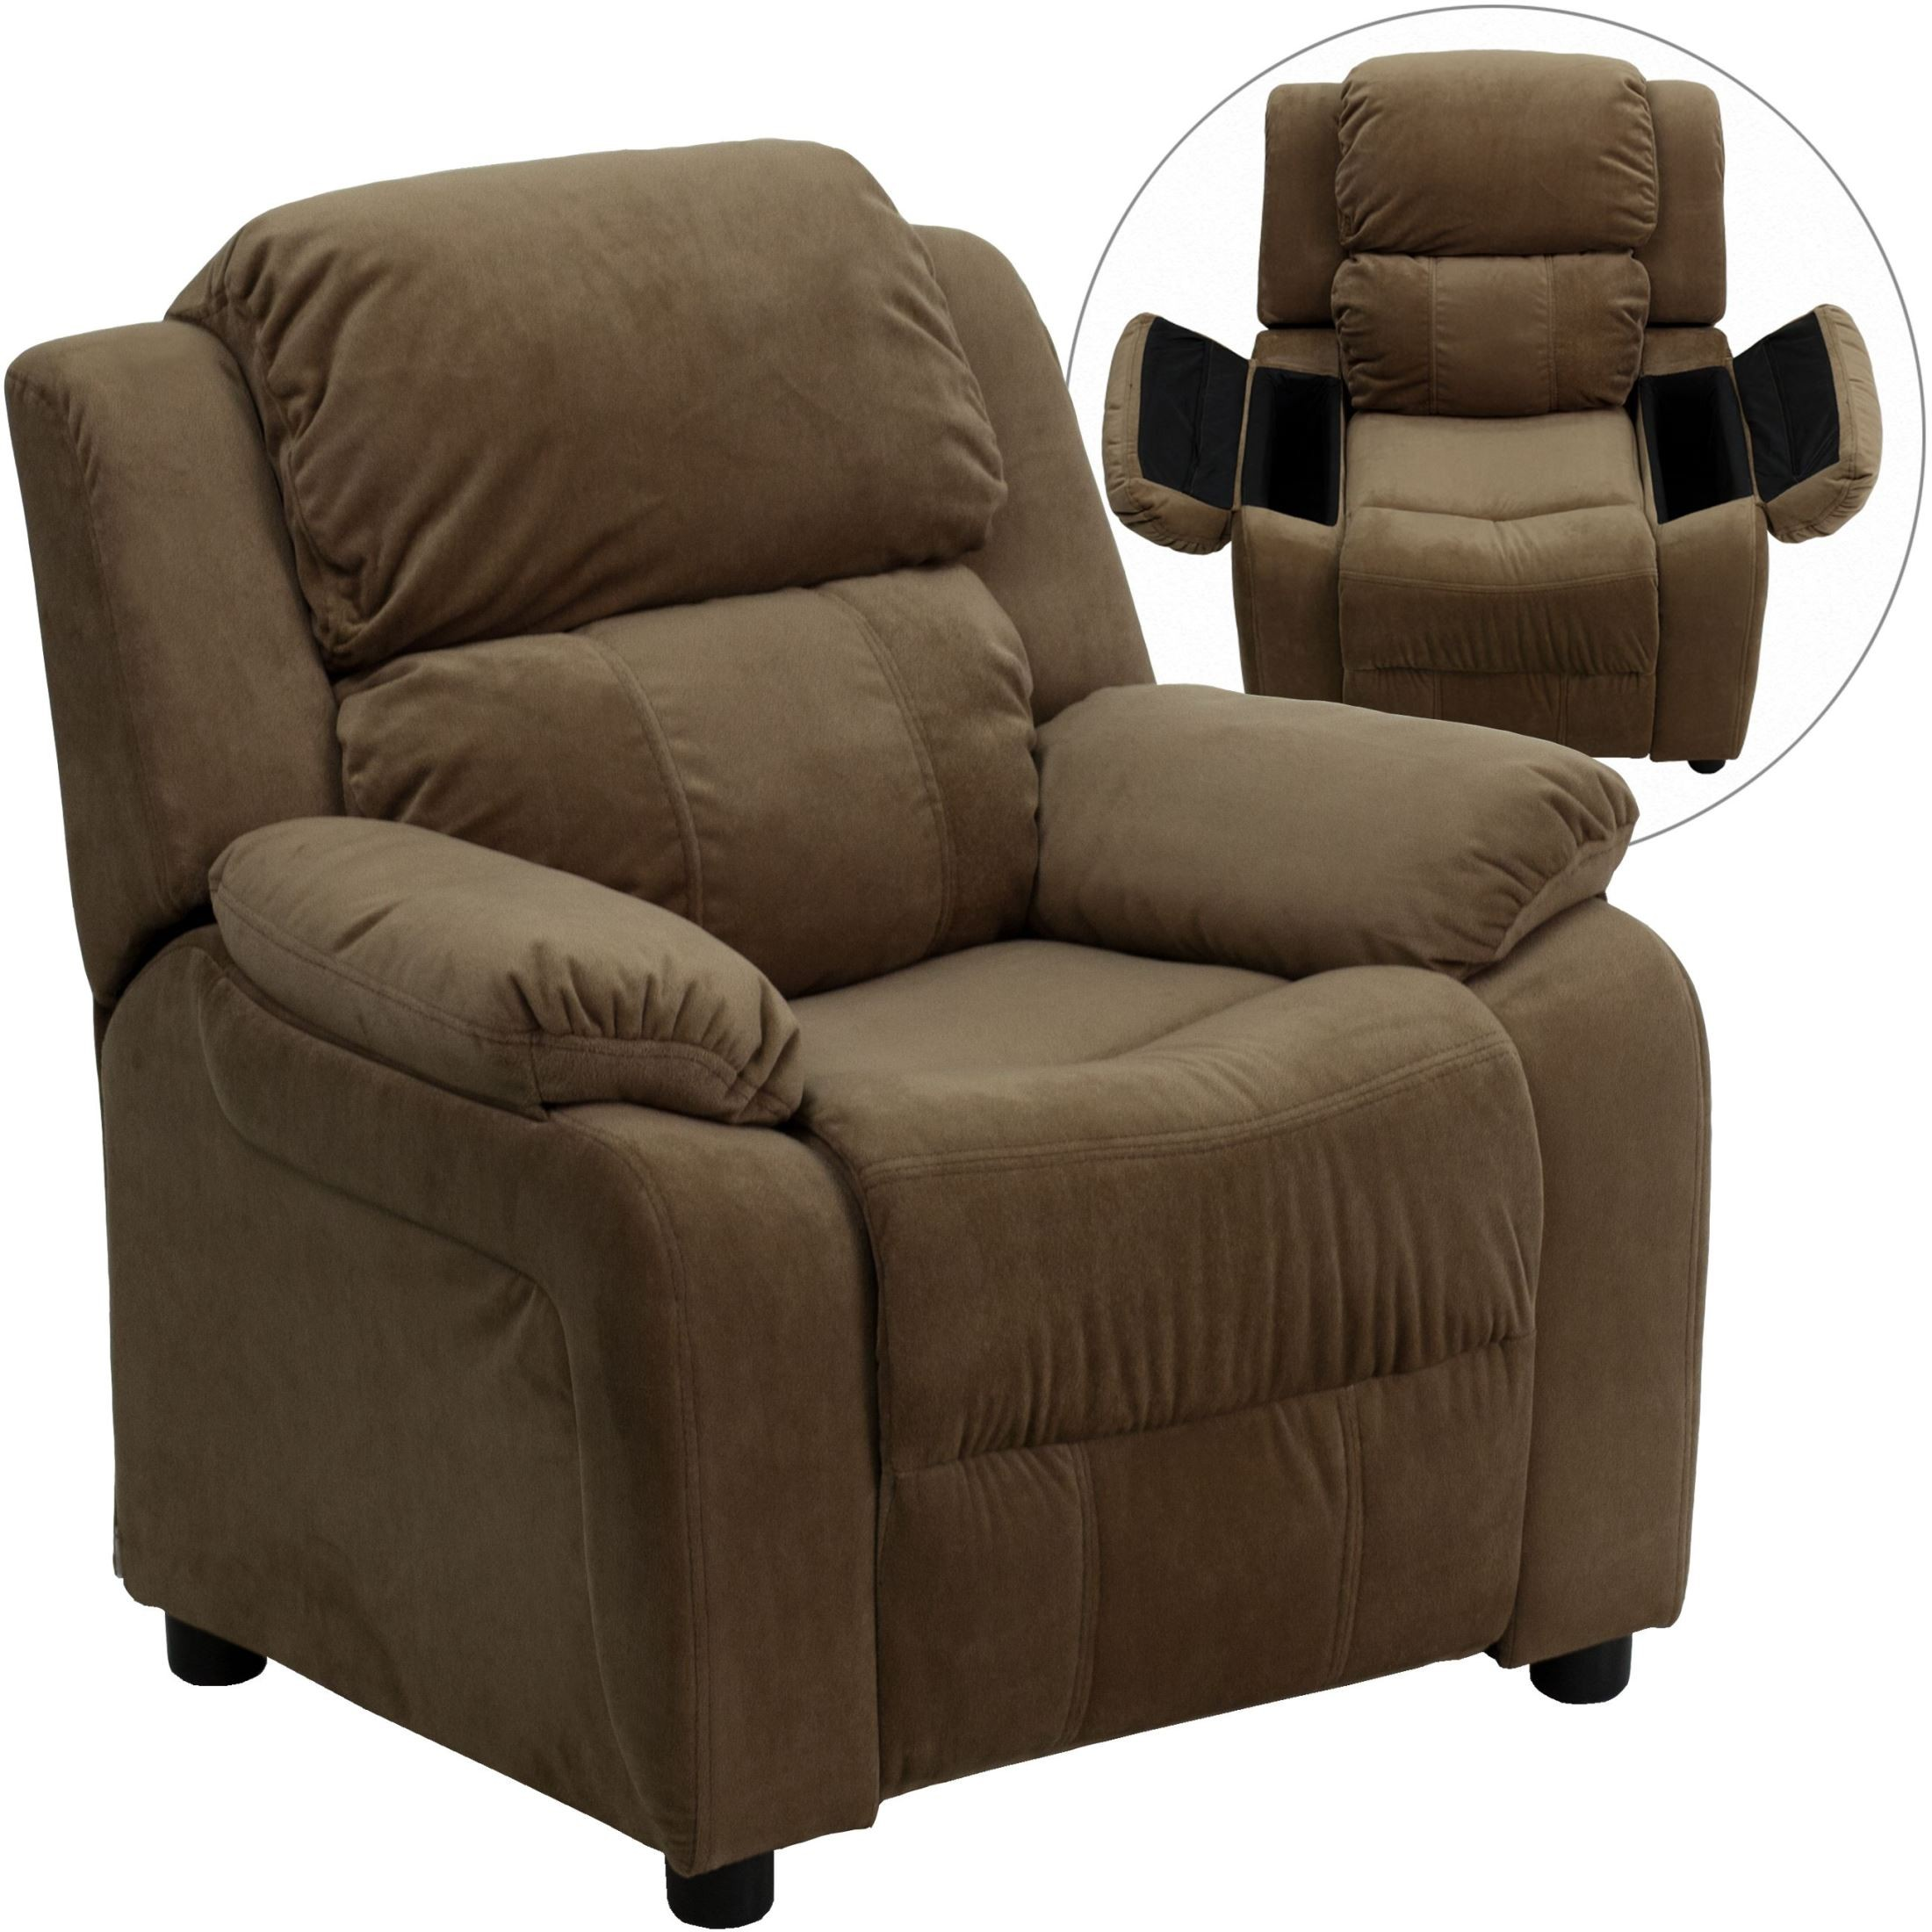 Kids Reclining Chair Deluxe Heavily Padded Brown Kids Storage Arm Recliner From